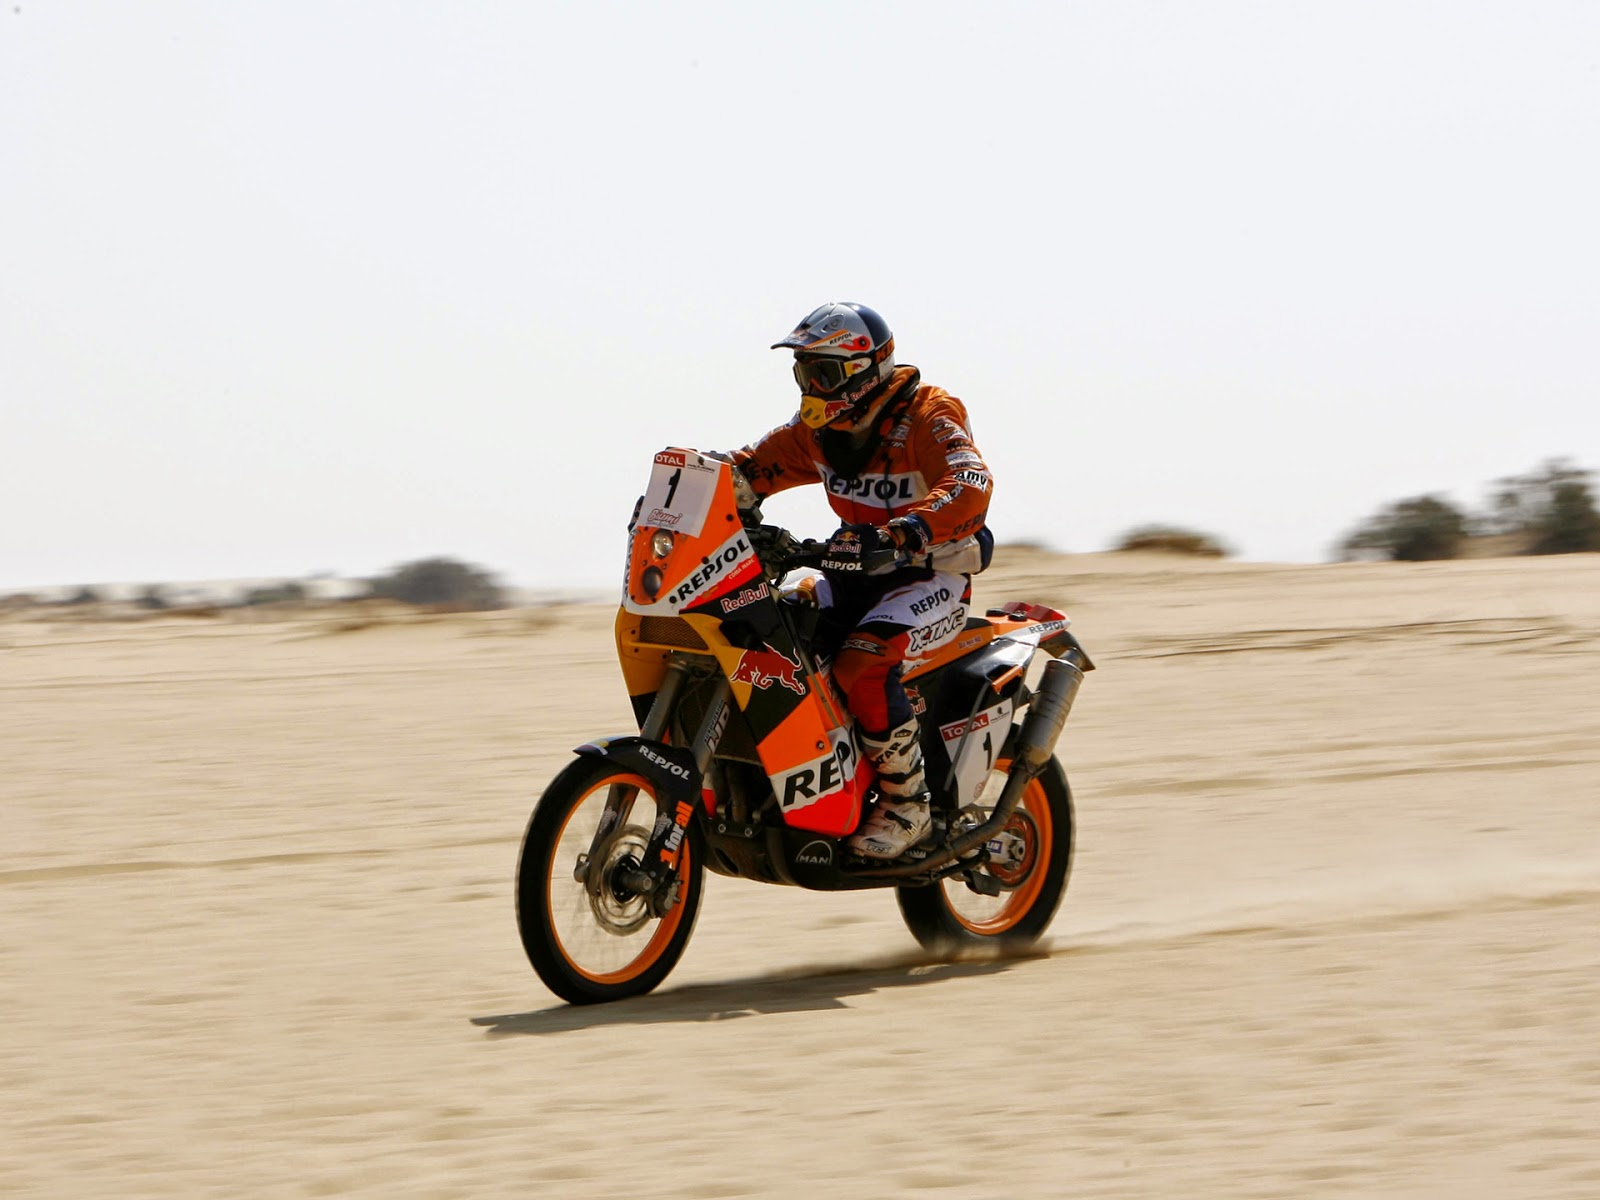 KTM 690 Rally Bike Photos